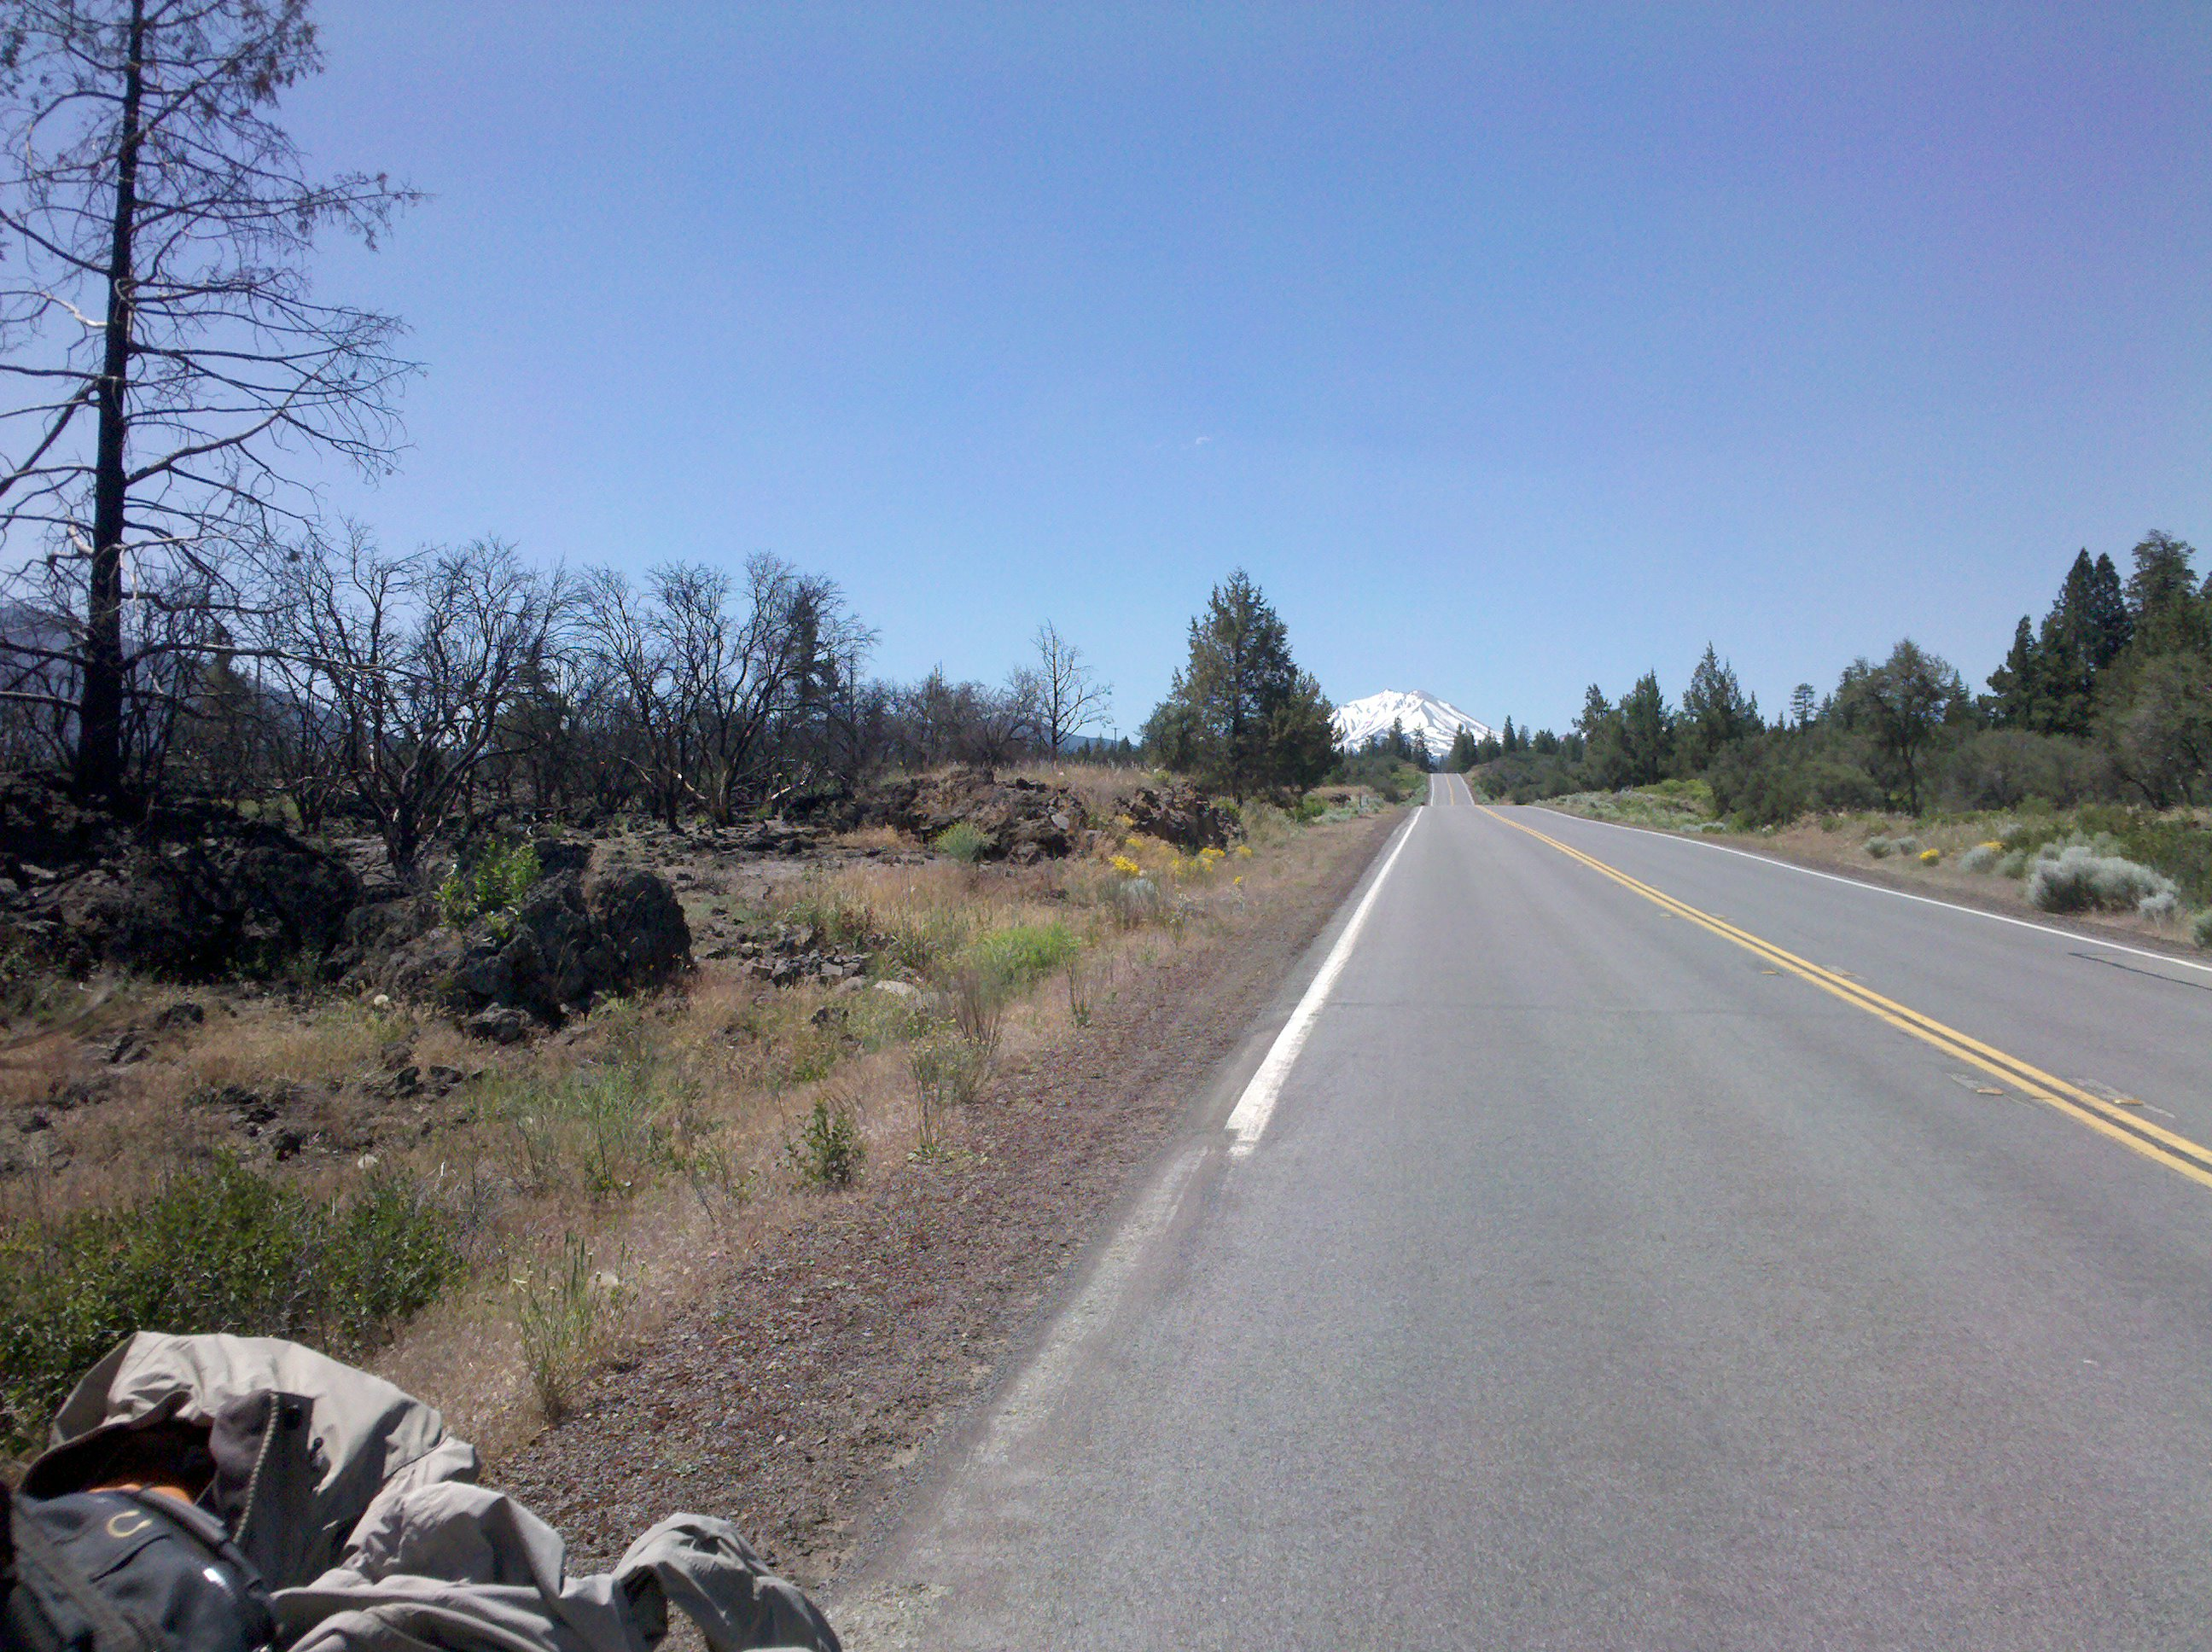 Mount Lassen in the background, while heading northward on State Route 89